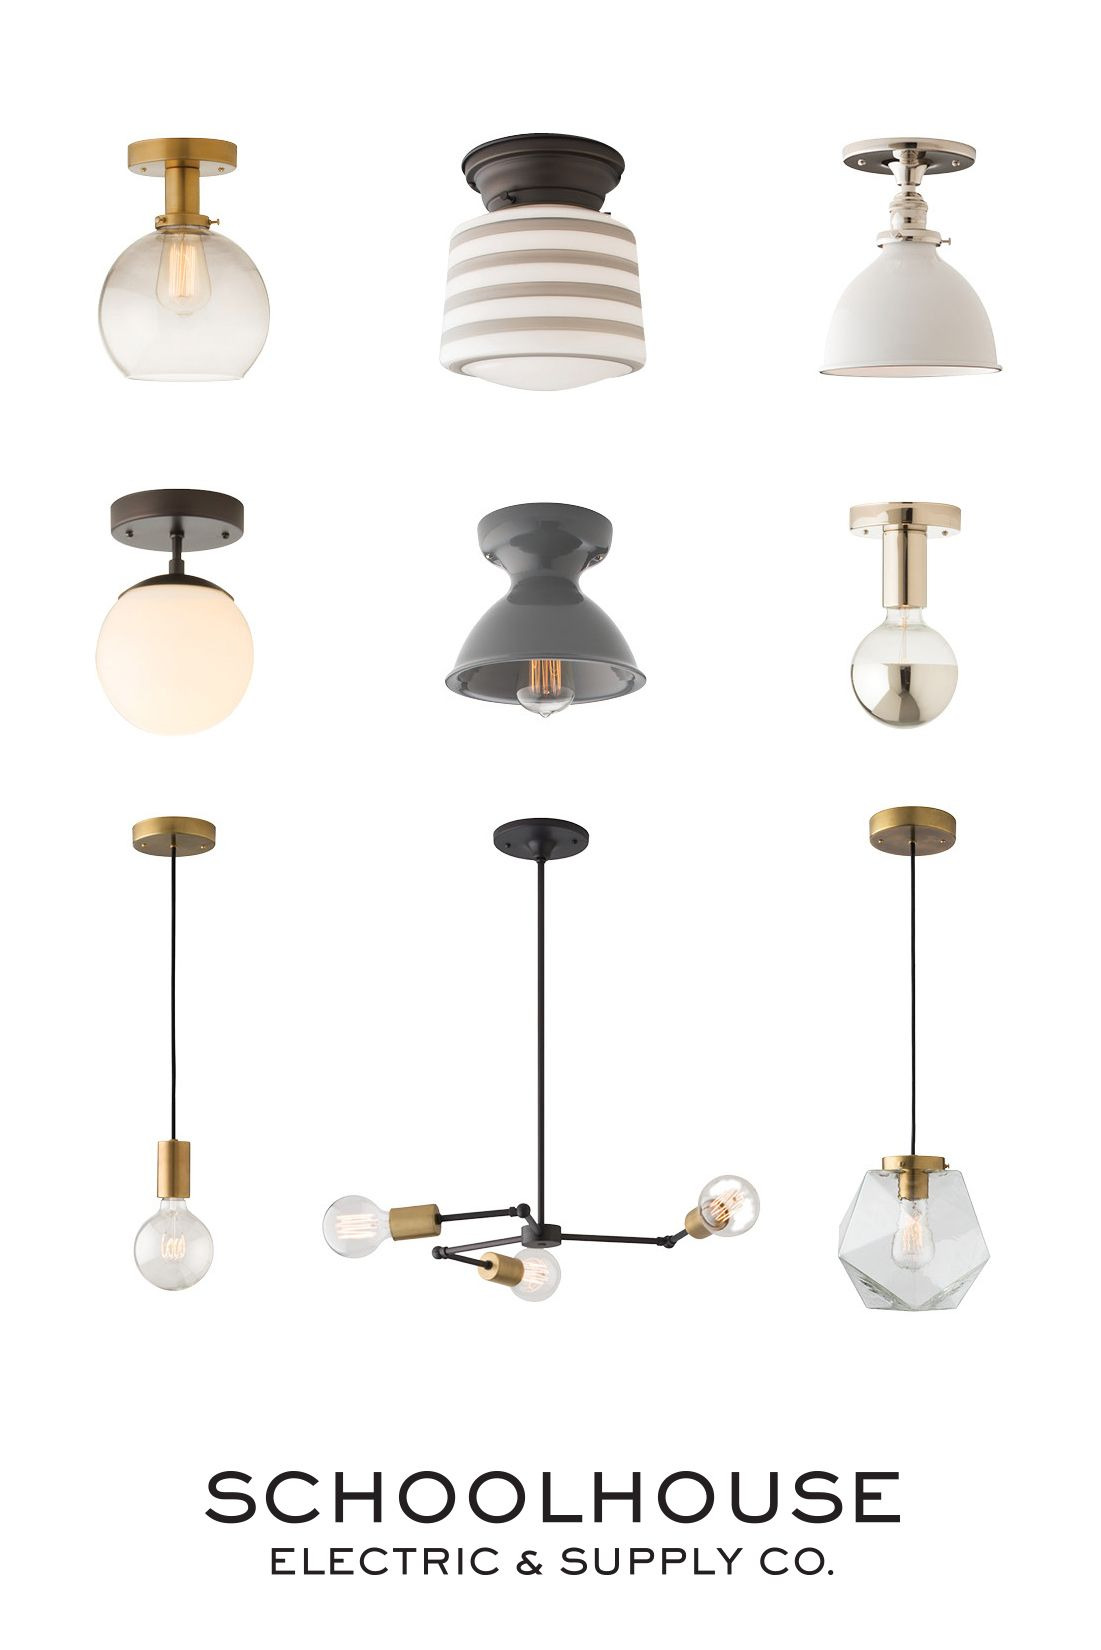 Modern Minimalist Vintage Inspired And Iconic Light Fixtures Hand Crafted In Portland Or Find Your Favorite At Schoolhouse Electric Our New